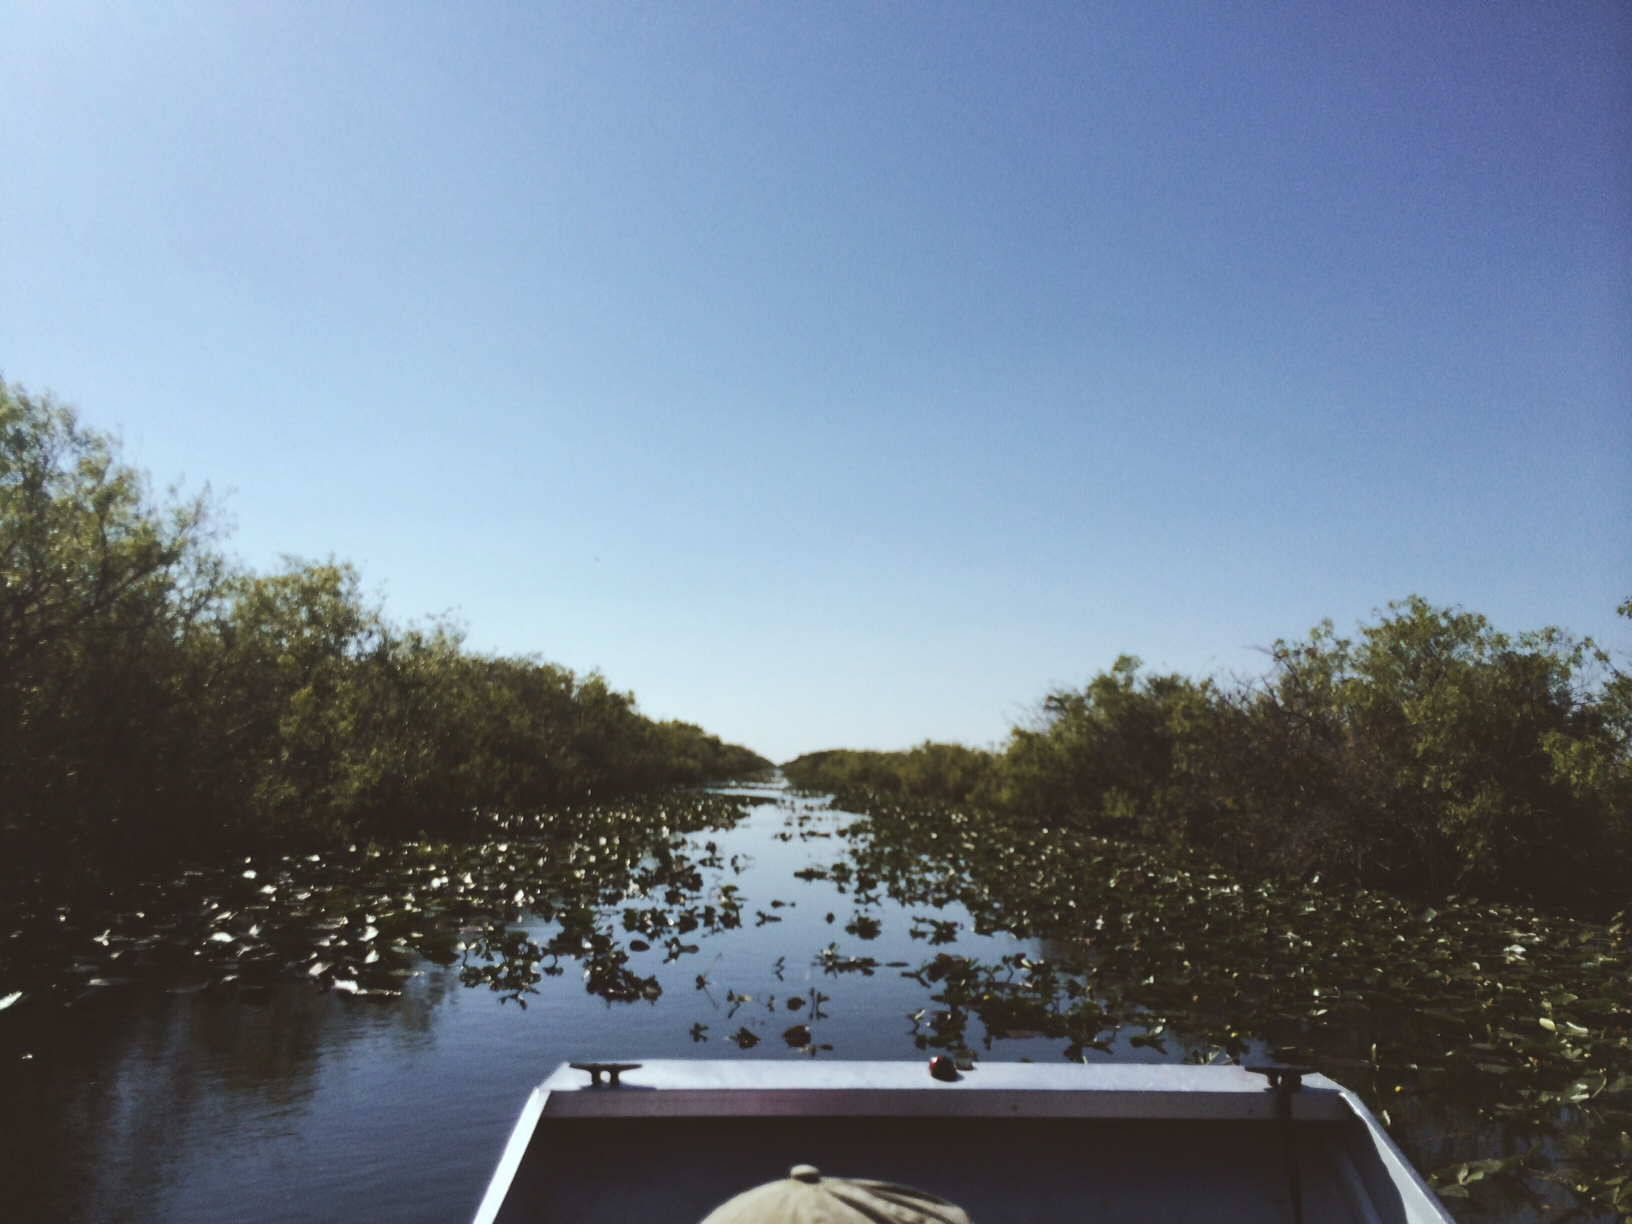 Gator ride in the Everglades.